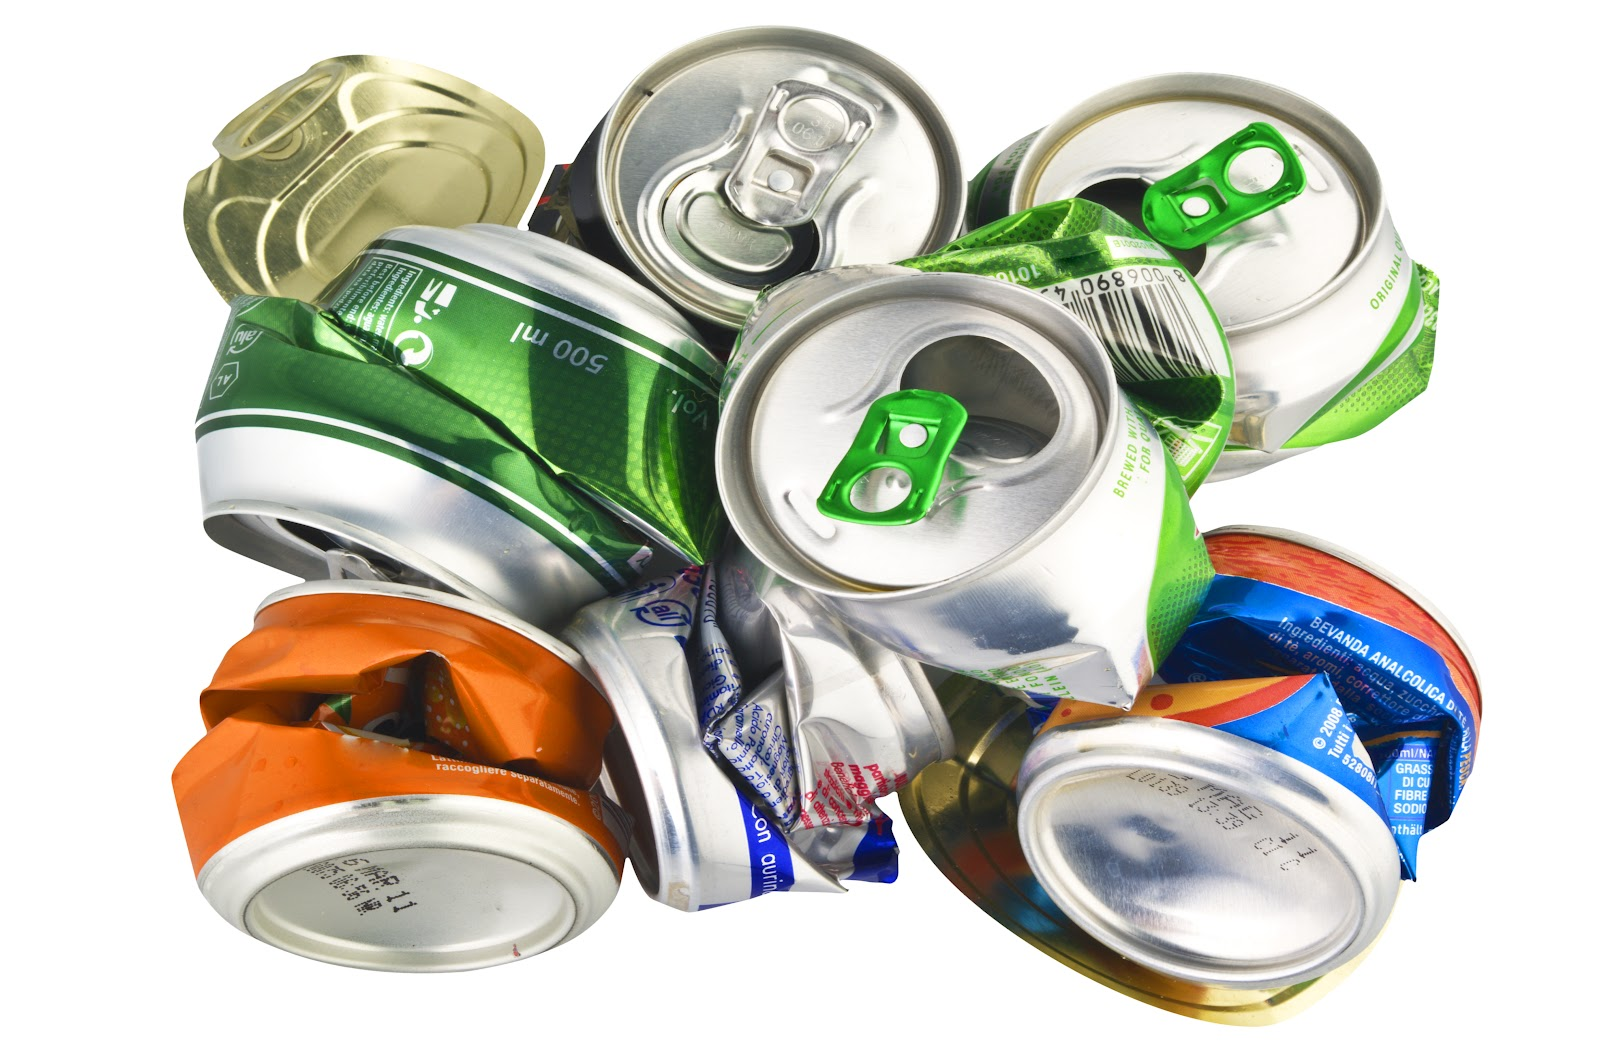 Furnace Belt Company: Aluminum Recycling With Gratex